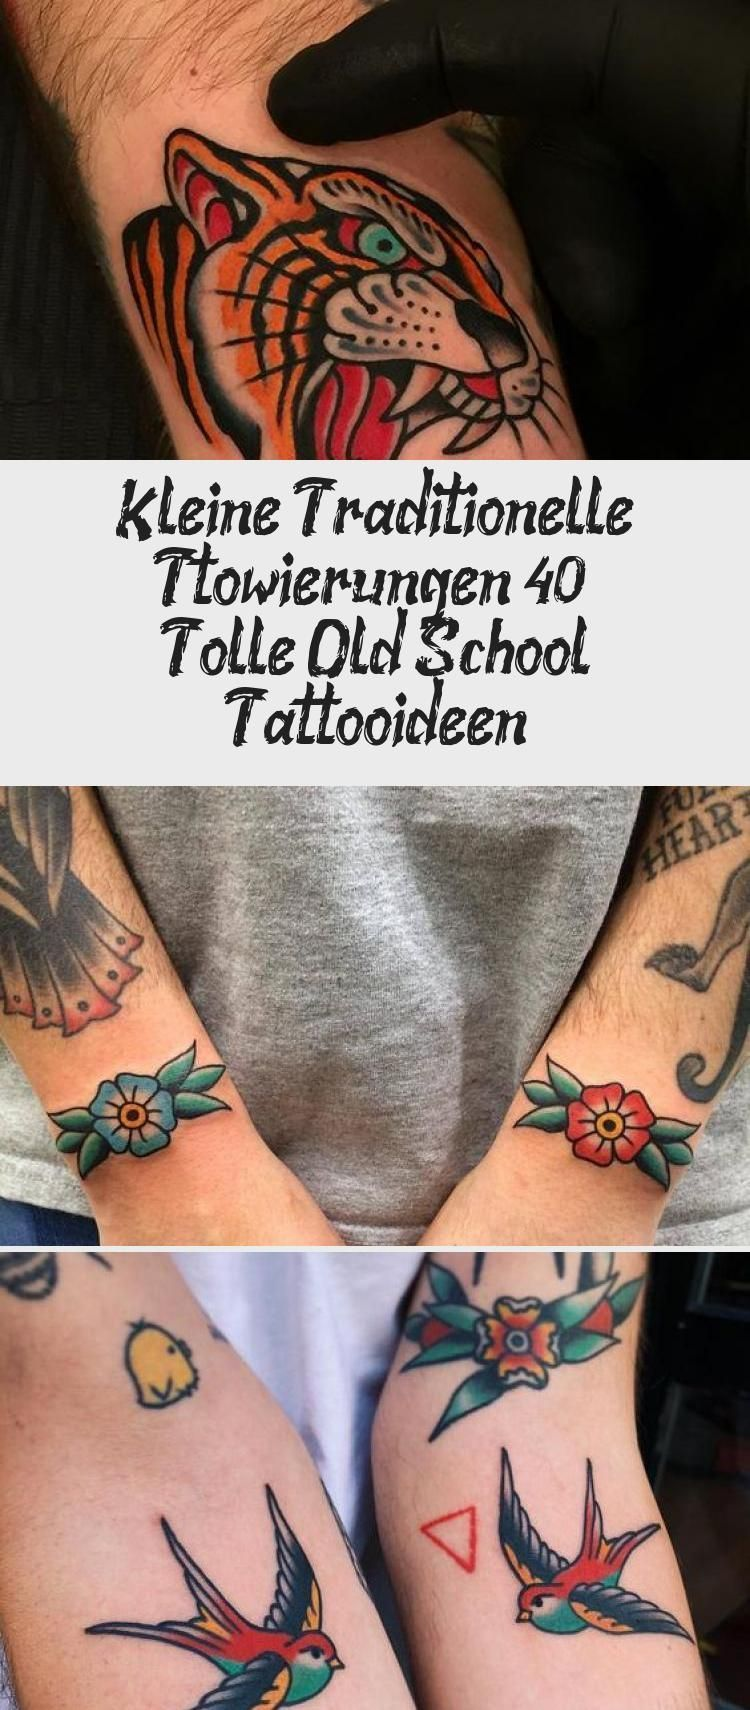 Small traditional tattoos: 40+ great old school tattoo ideas - tattoos and body ... -  Small traditional tattoos: 40+ great old school tattoo ideas – tattoos and body art –  Small tr - #Body #bodyimageart #bodypositivitydrawings #great #ideas #school #small #tattoo #tattoobody #Tattoos #traditional